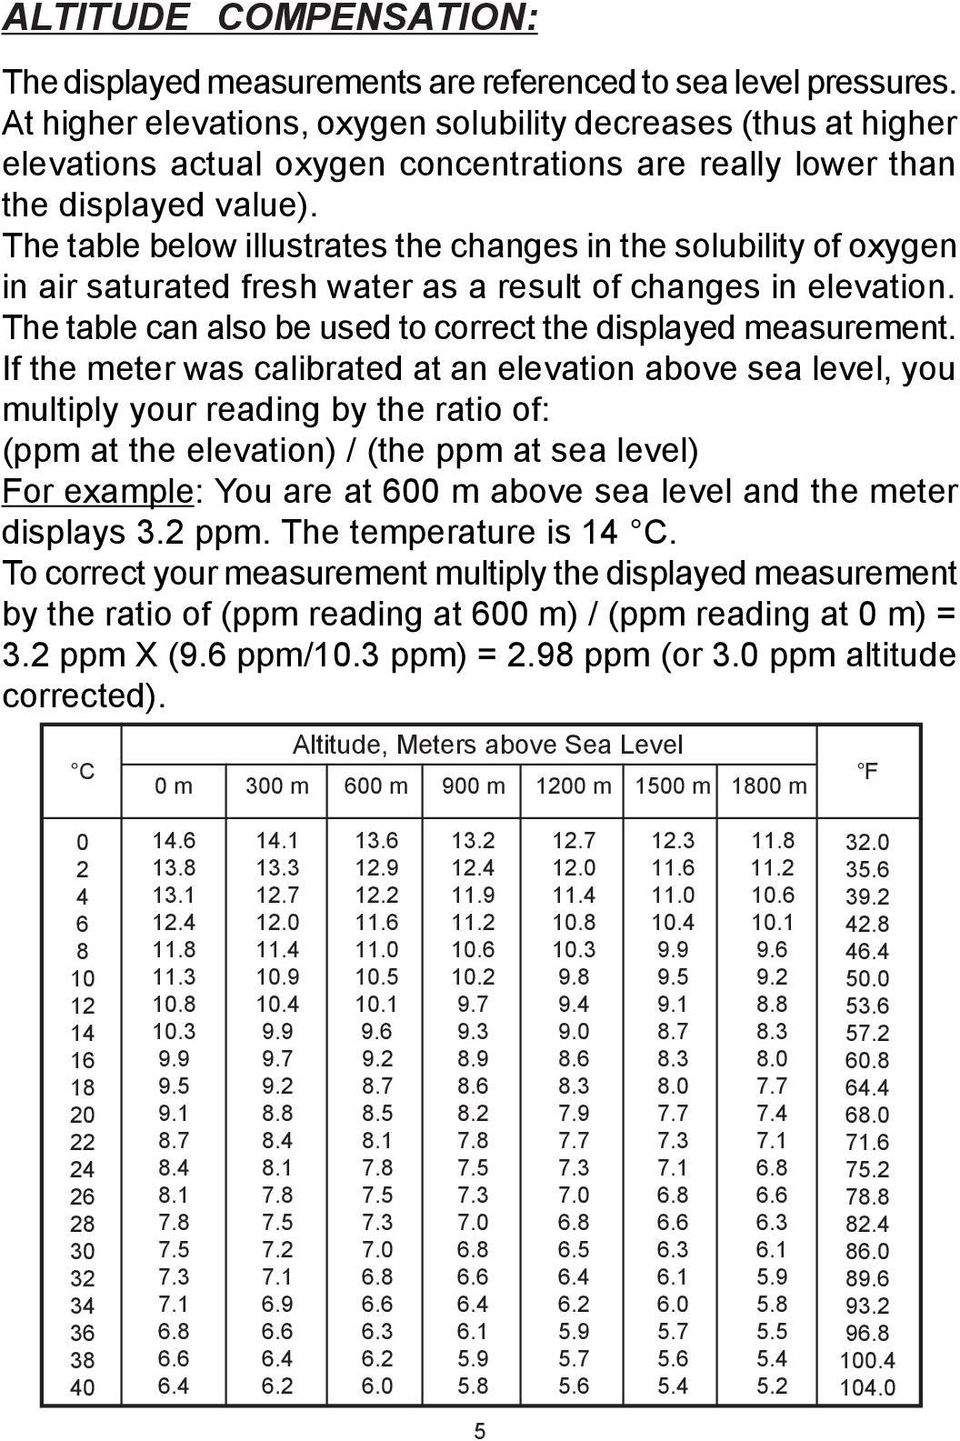 The table below illustrates the changes in the solubility of oxygen in air saturated fresh water as a result of changes in elevation. The table can also be used to correct the displayed measurement.